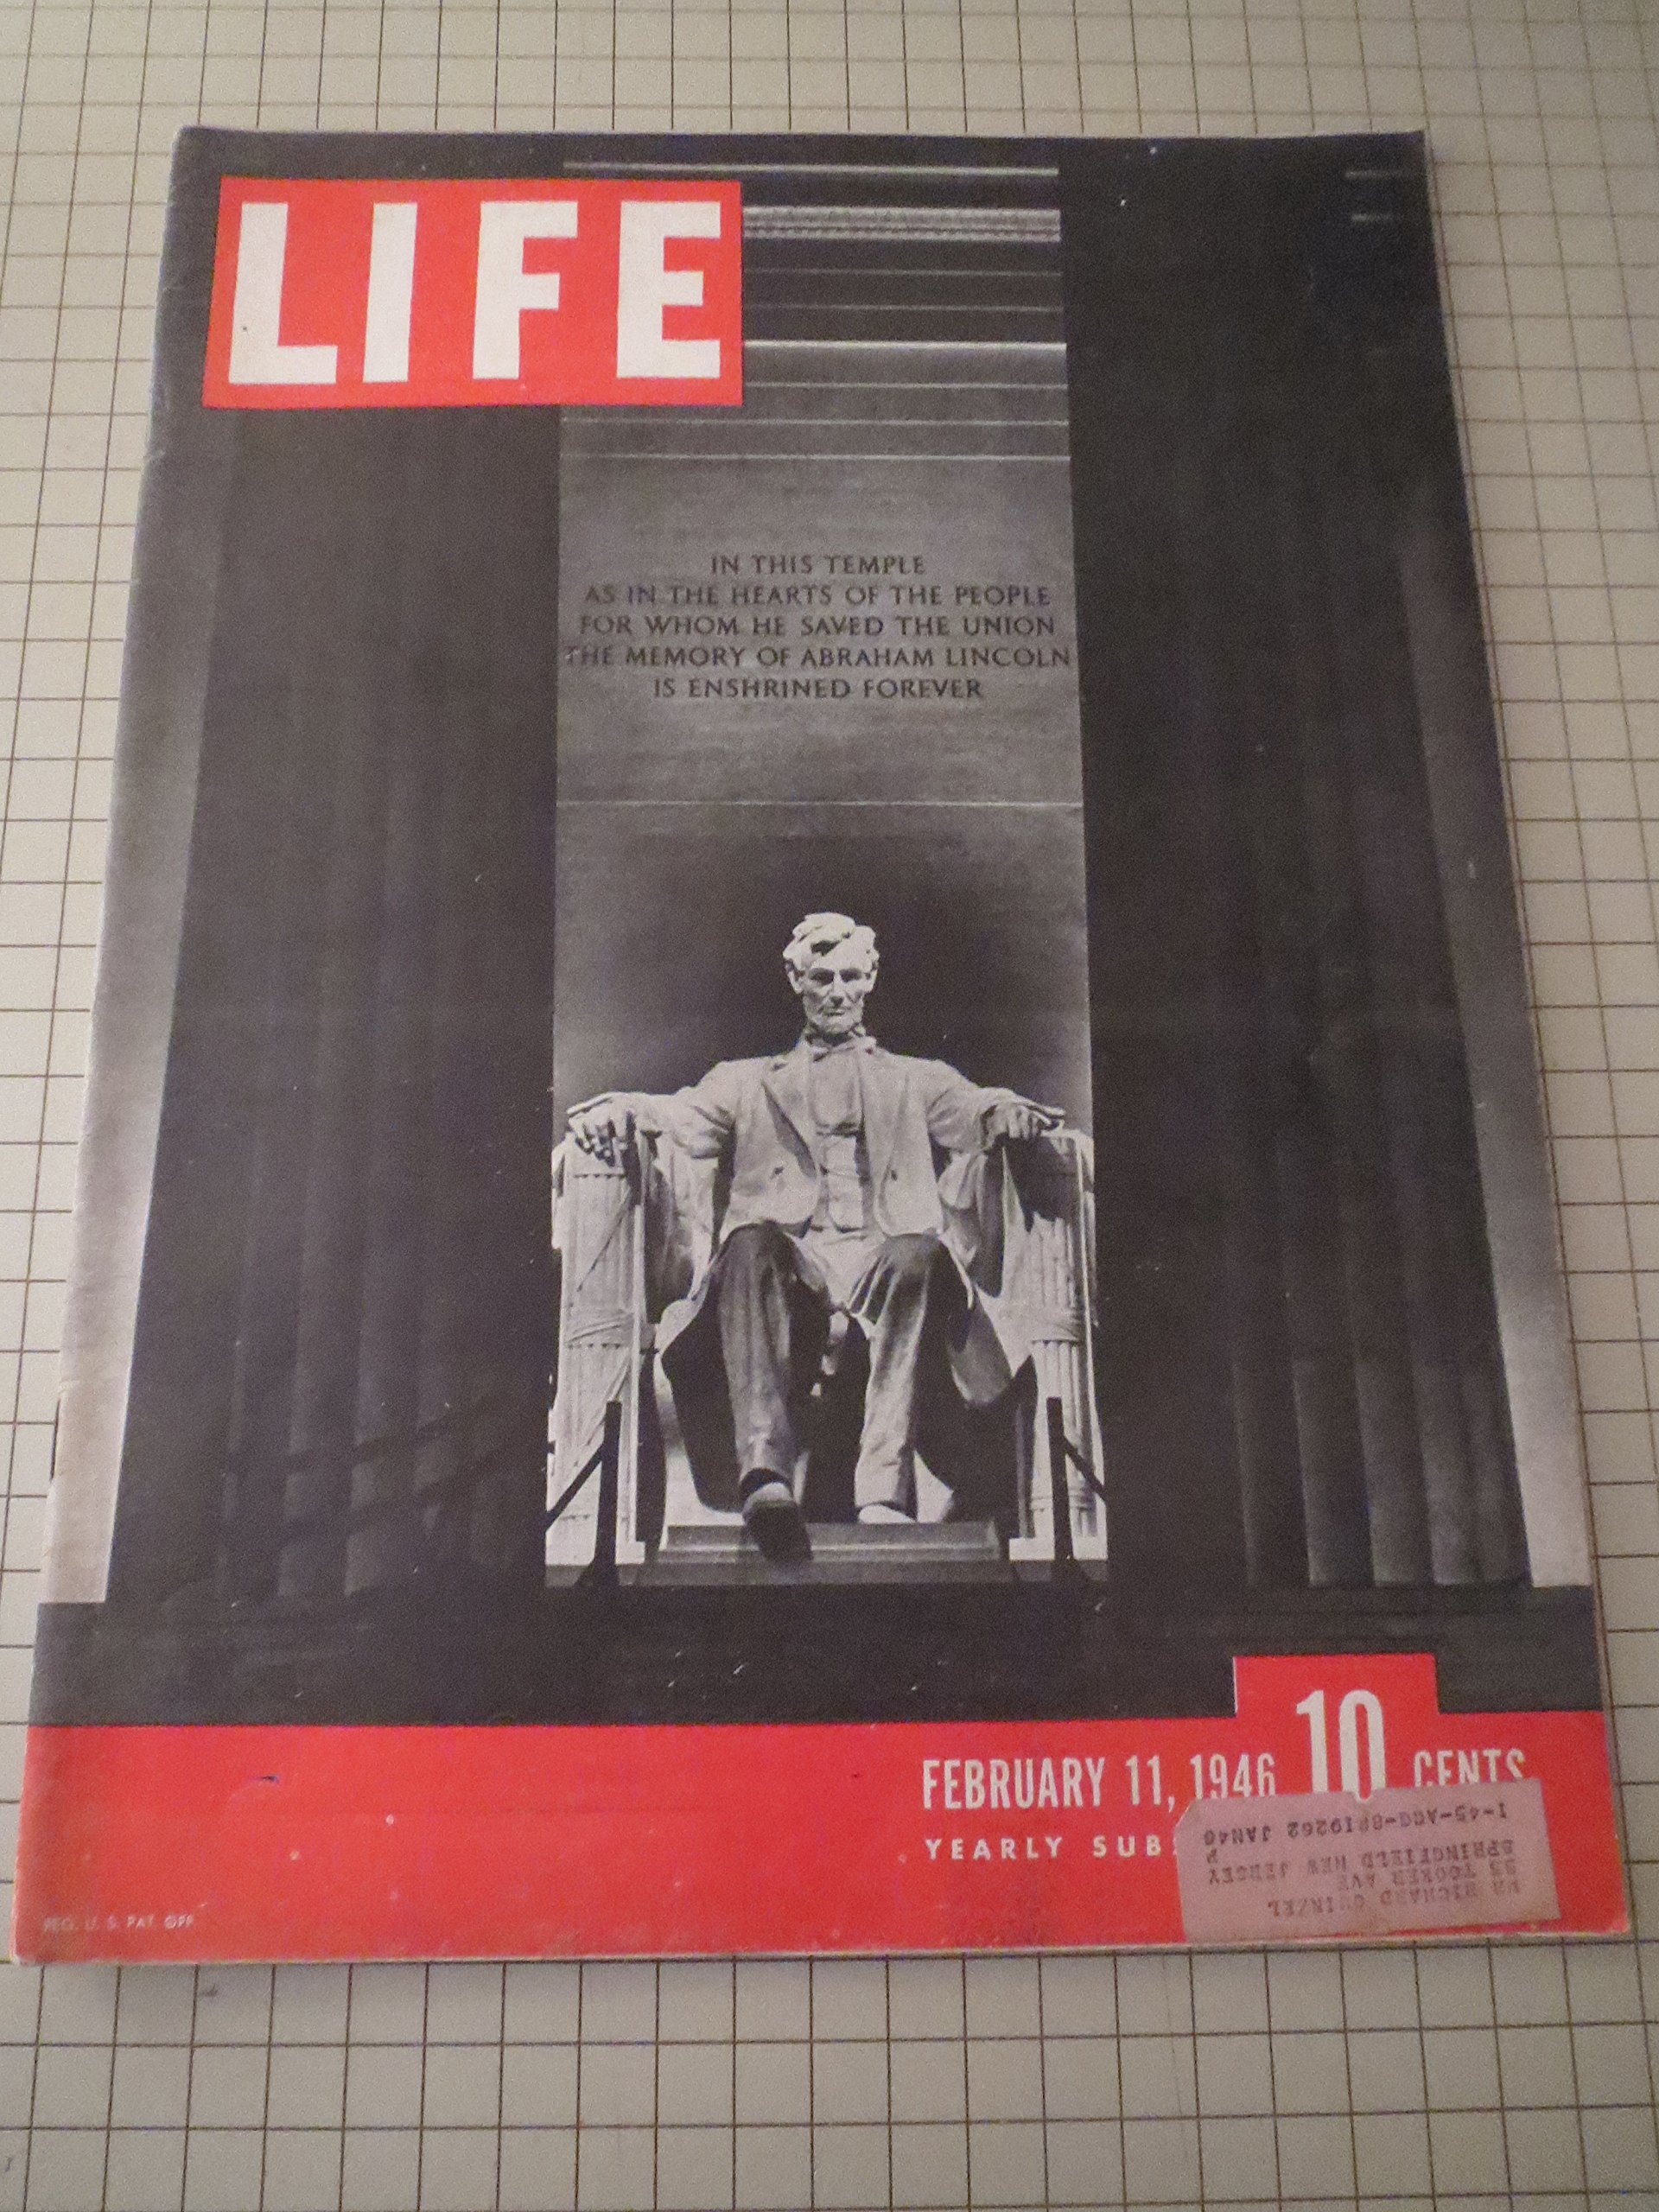 life magazine 1946 abe lincoln alfred eisenstaedt photographs japanese come home from lost empire war surgery ocean liner queen elizabeth breakfast in hollywood radio jackpot magnificent yankee coca cola ad